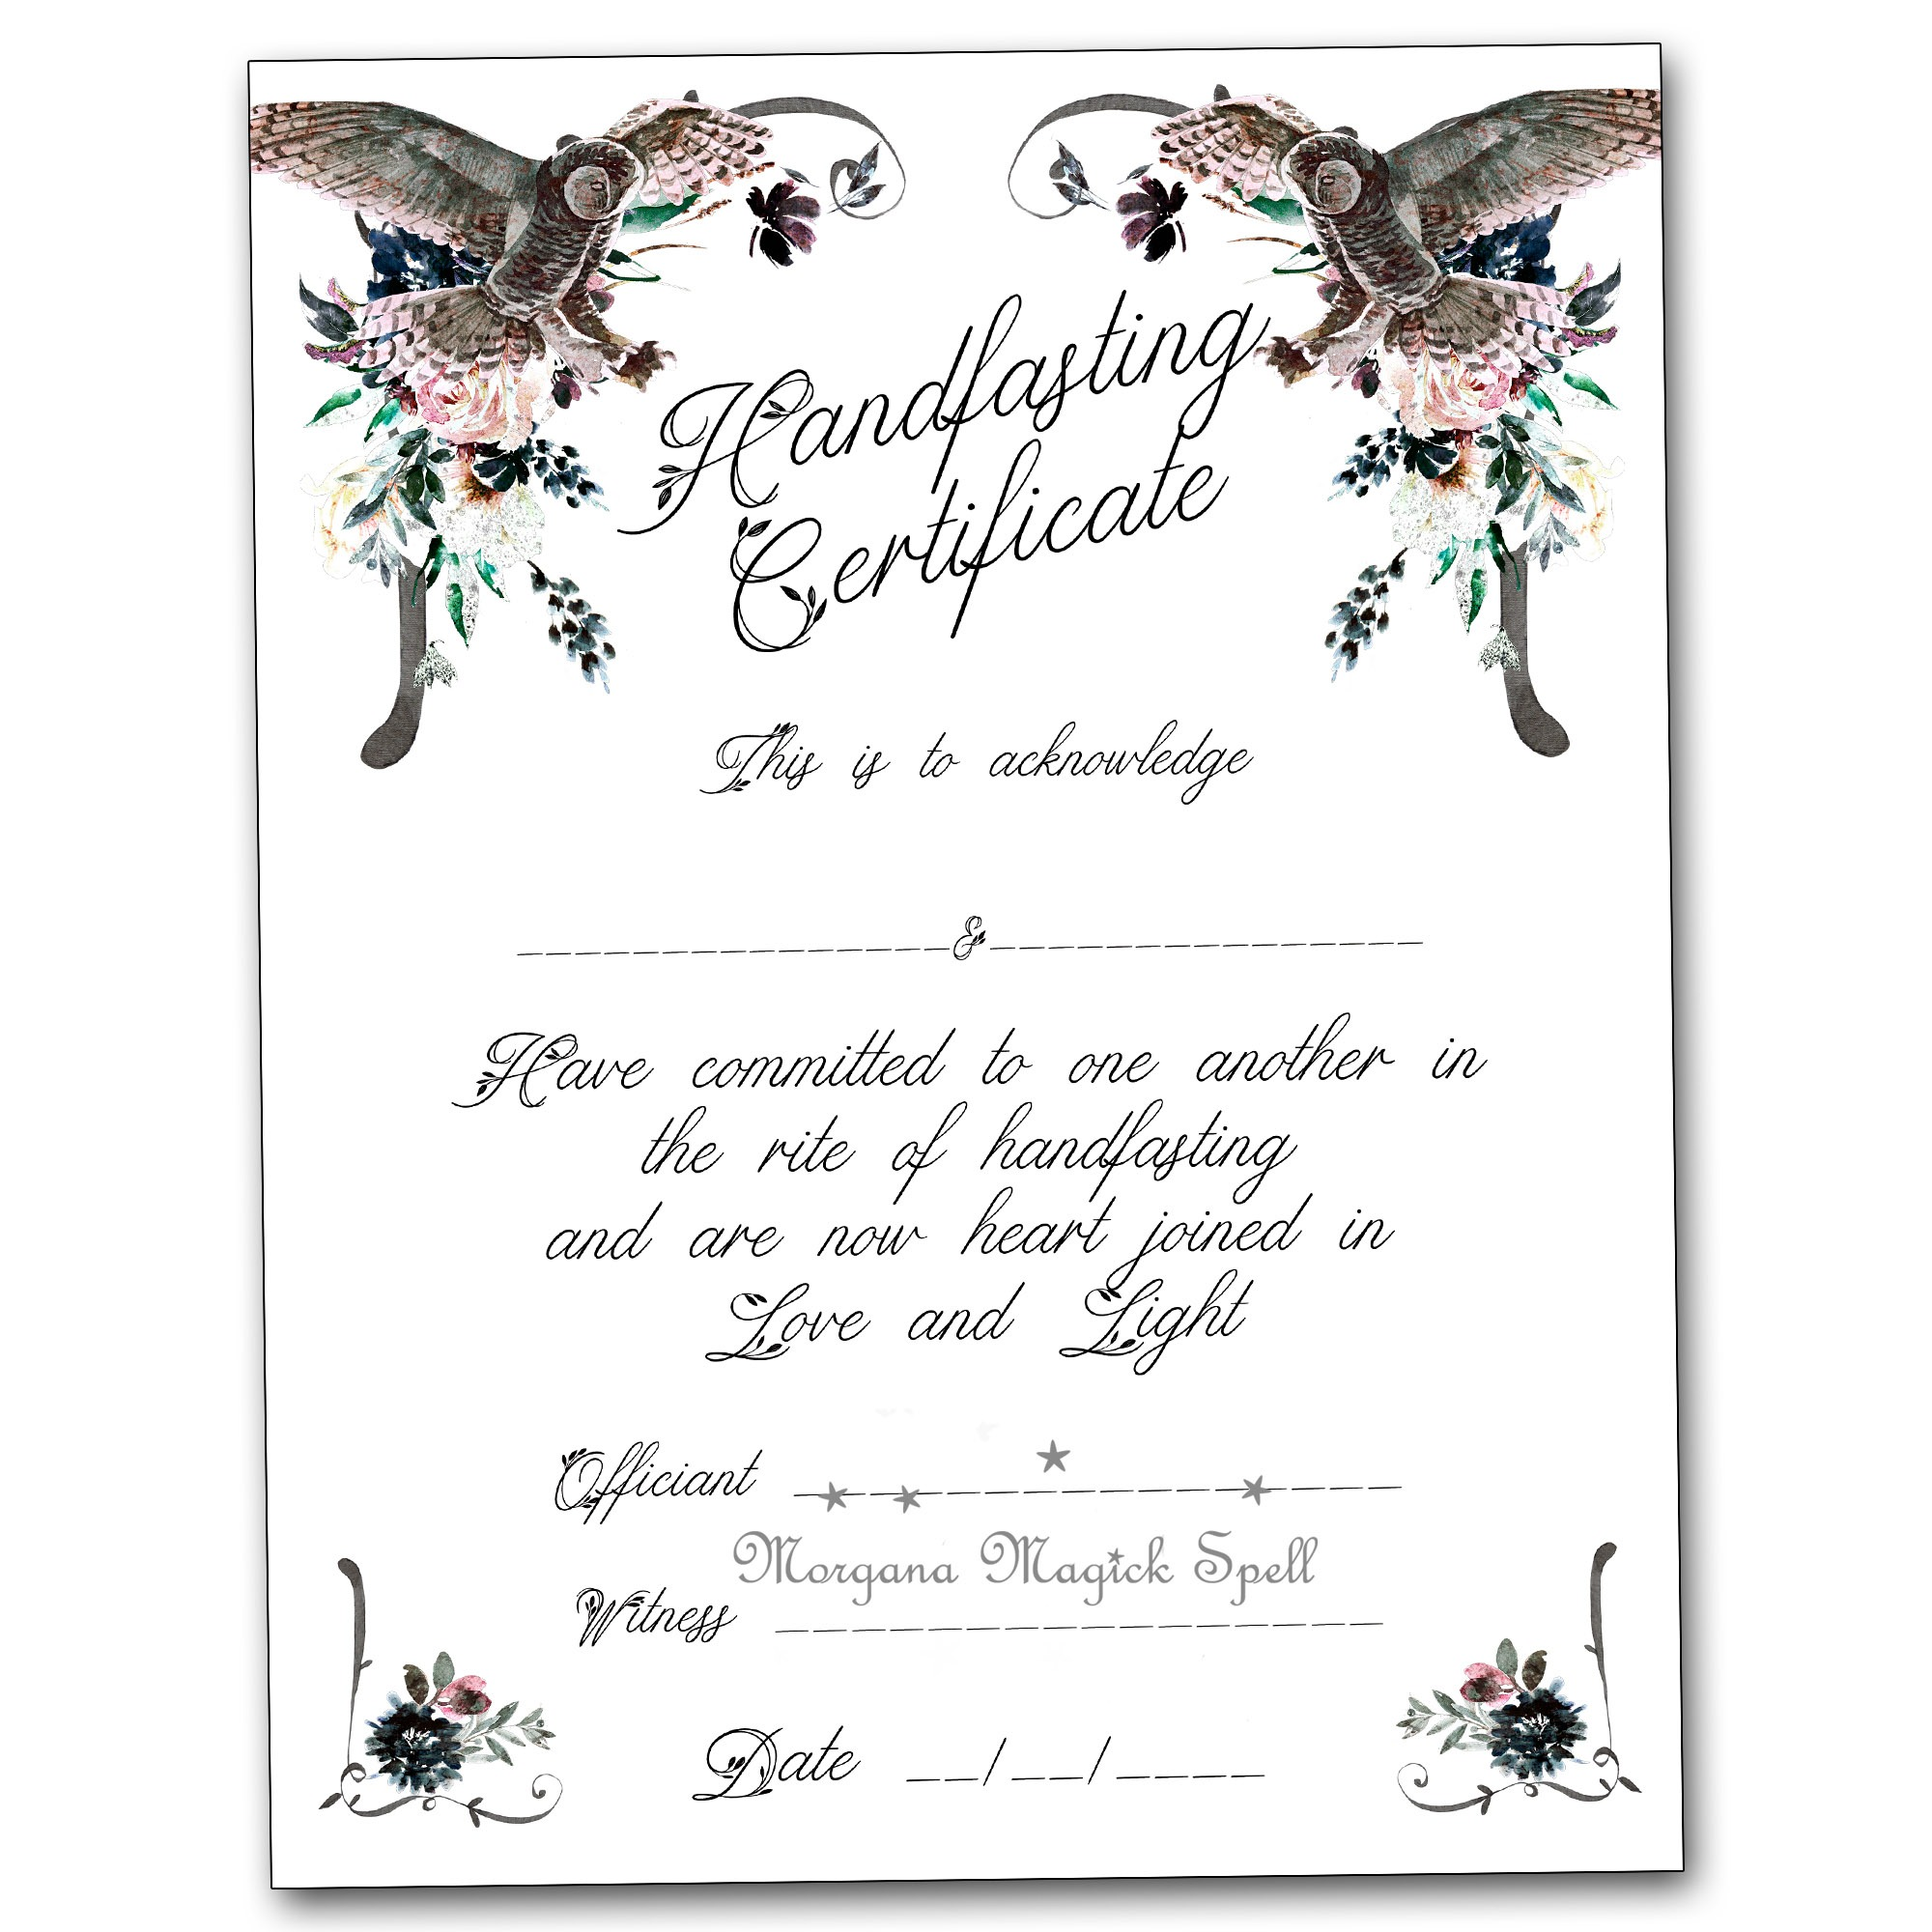 HANDFASTING CERTIFICATE Once Upon a Dream